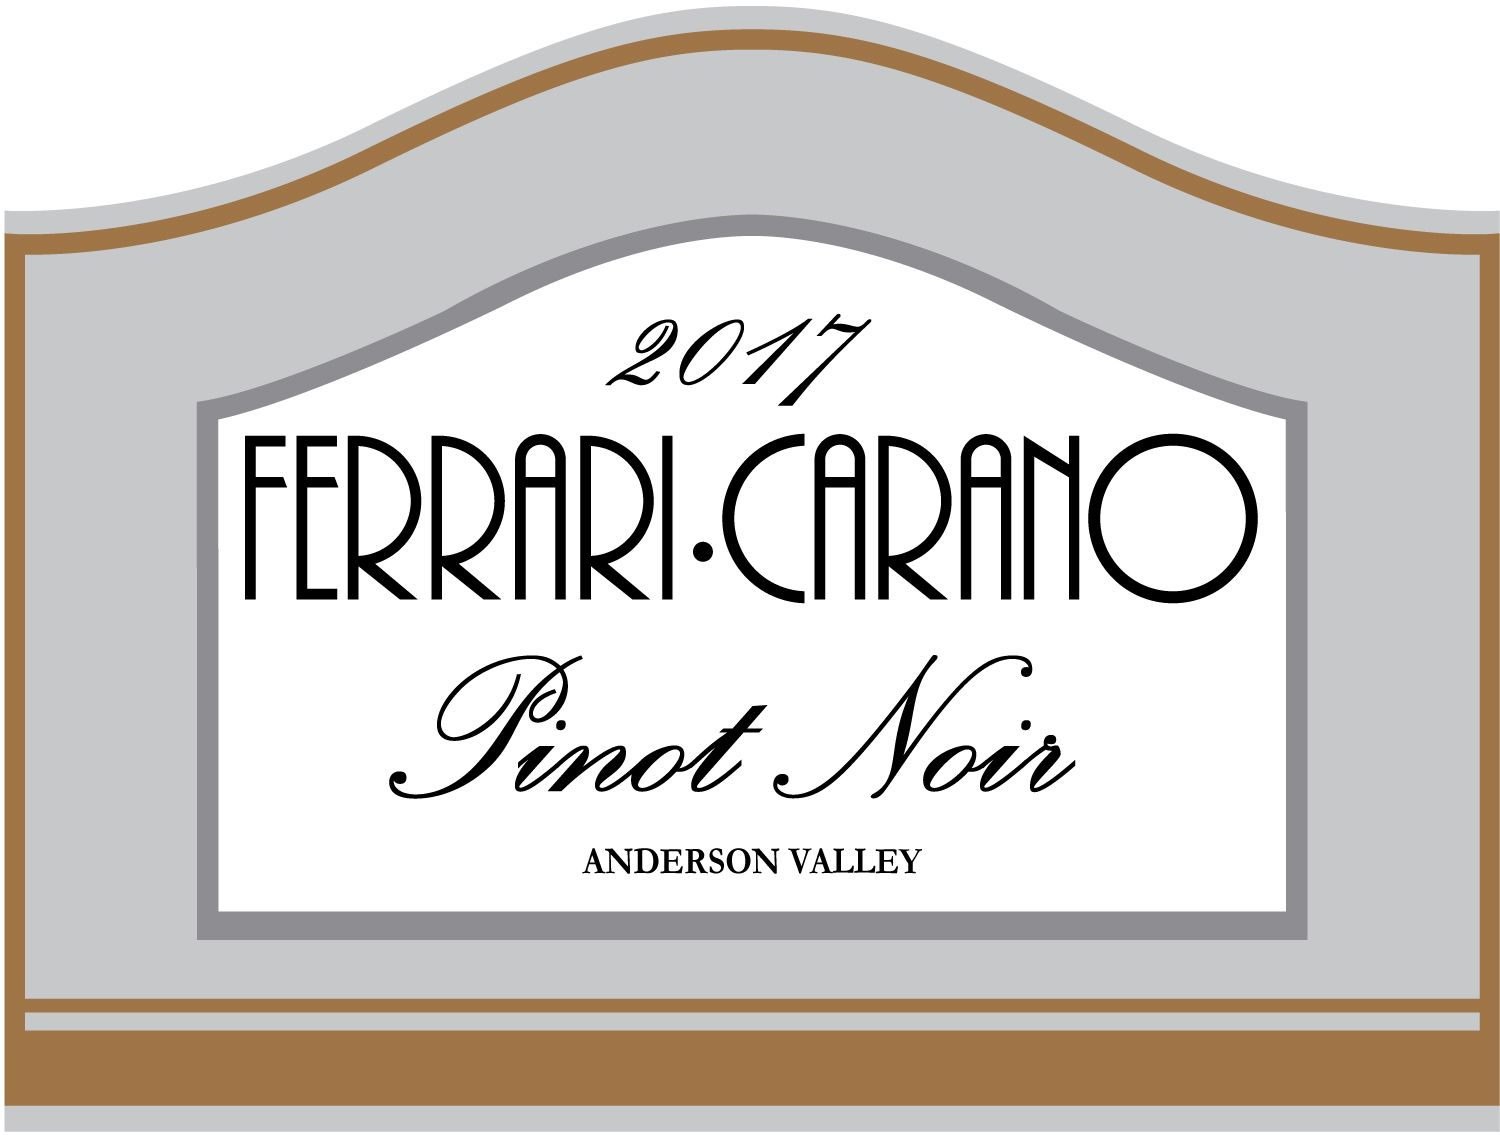 Ferrari-Carano Anderson Valley Pinot Noir 2017  Front Label